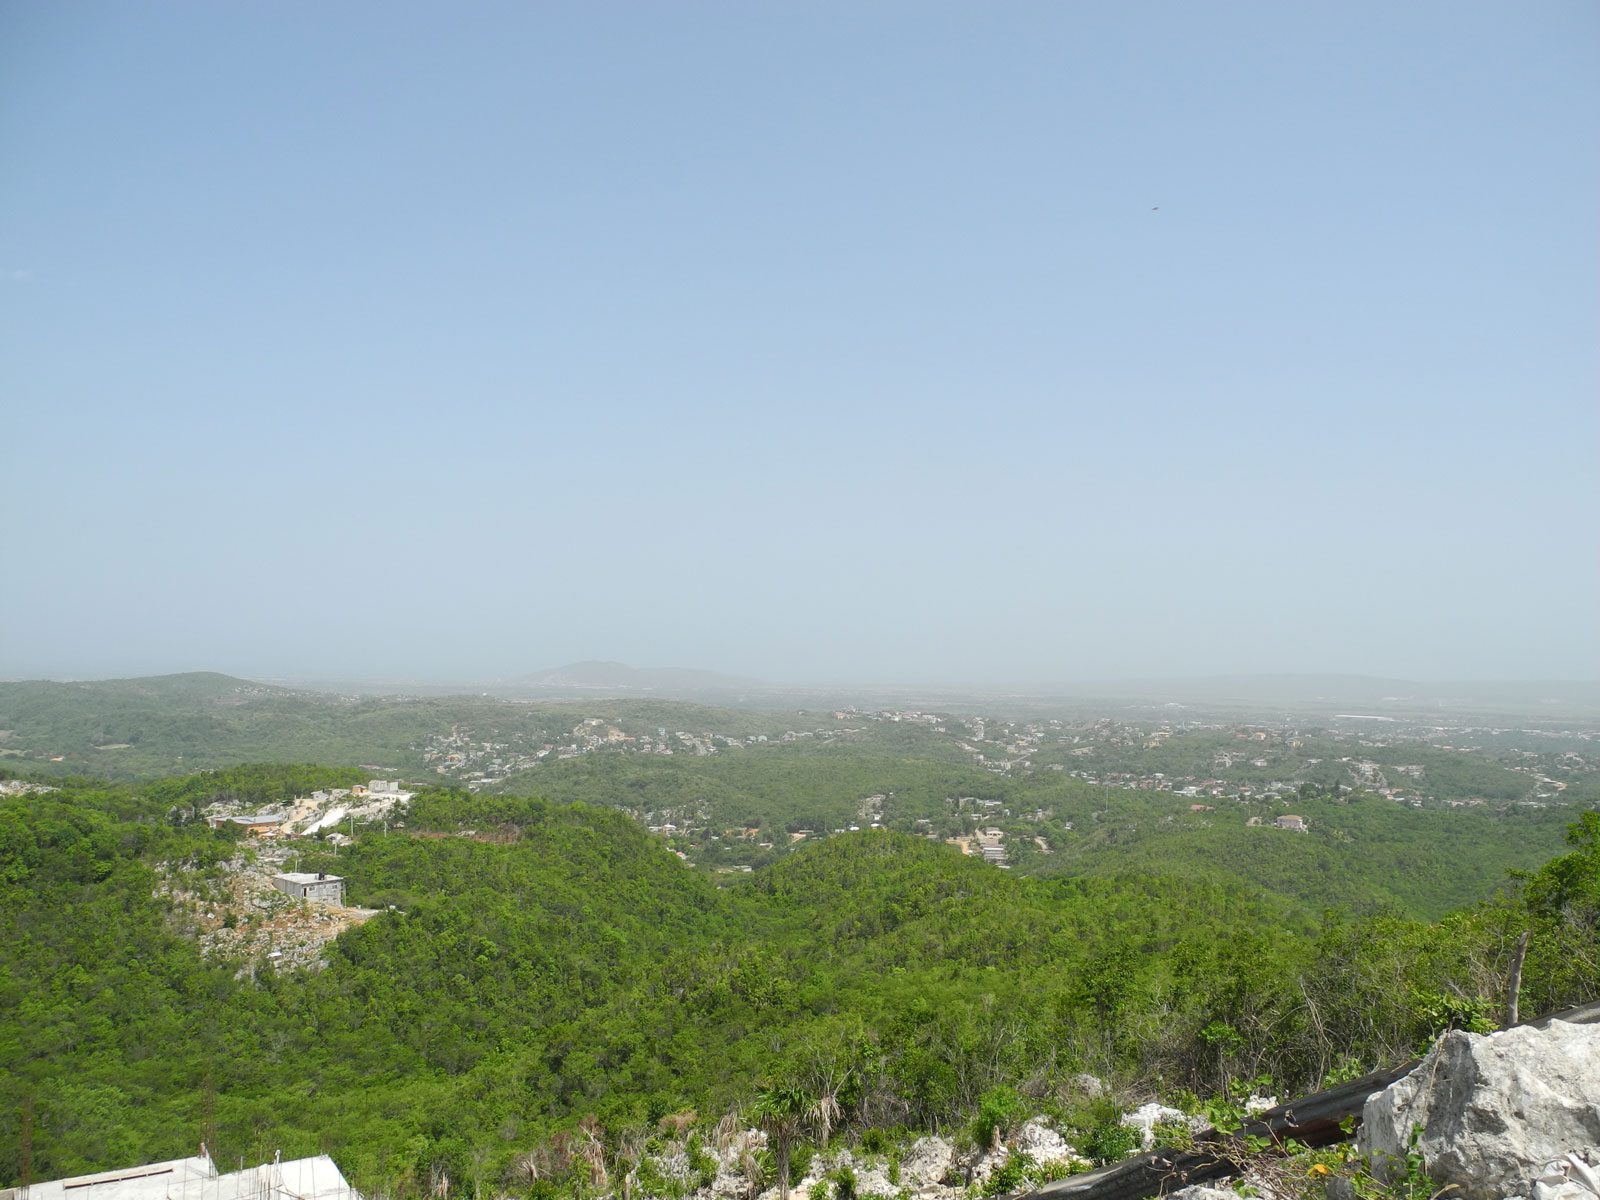 The view from Pinnacle's highest point, Sligoville, Jamaica, June, 2014